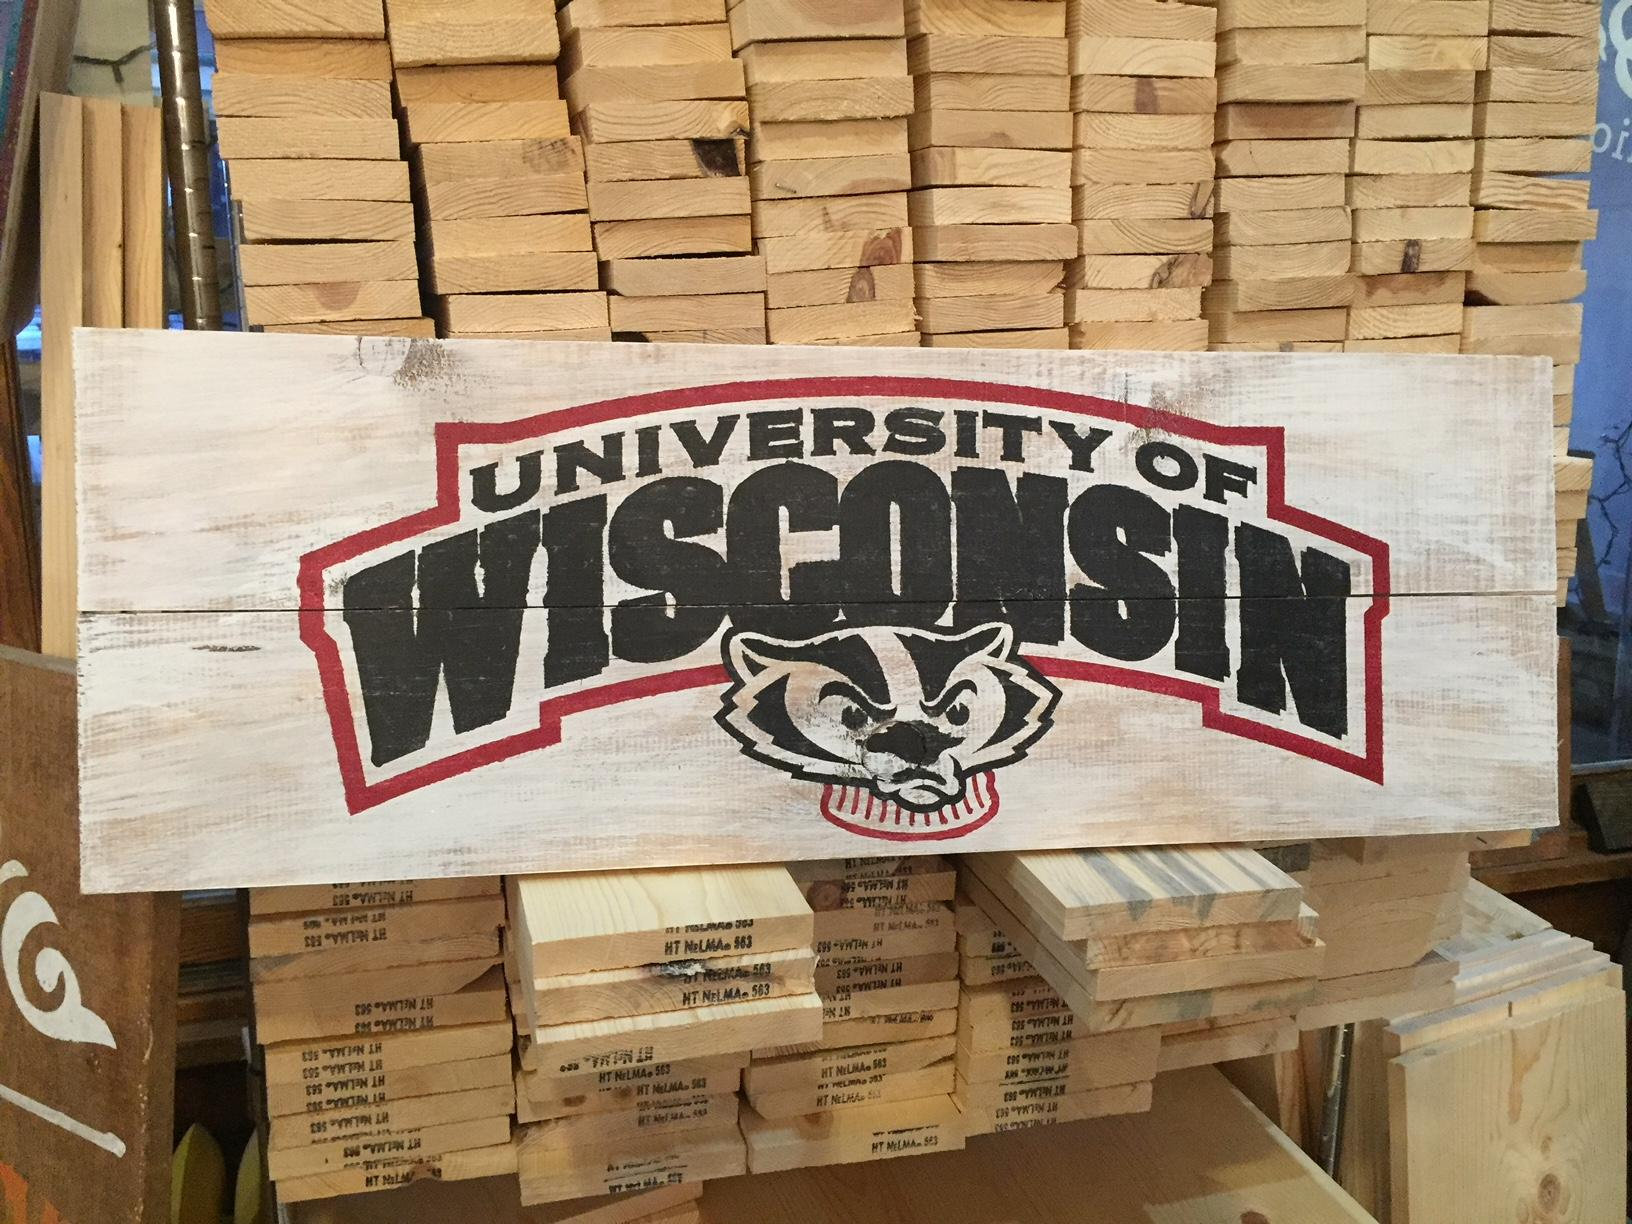 A Wisconsin Badgers board for sports fans at Board and Brush, January 27, 2018, (WLUK/Lauren Kalil)<p></p>